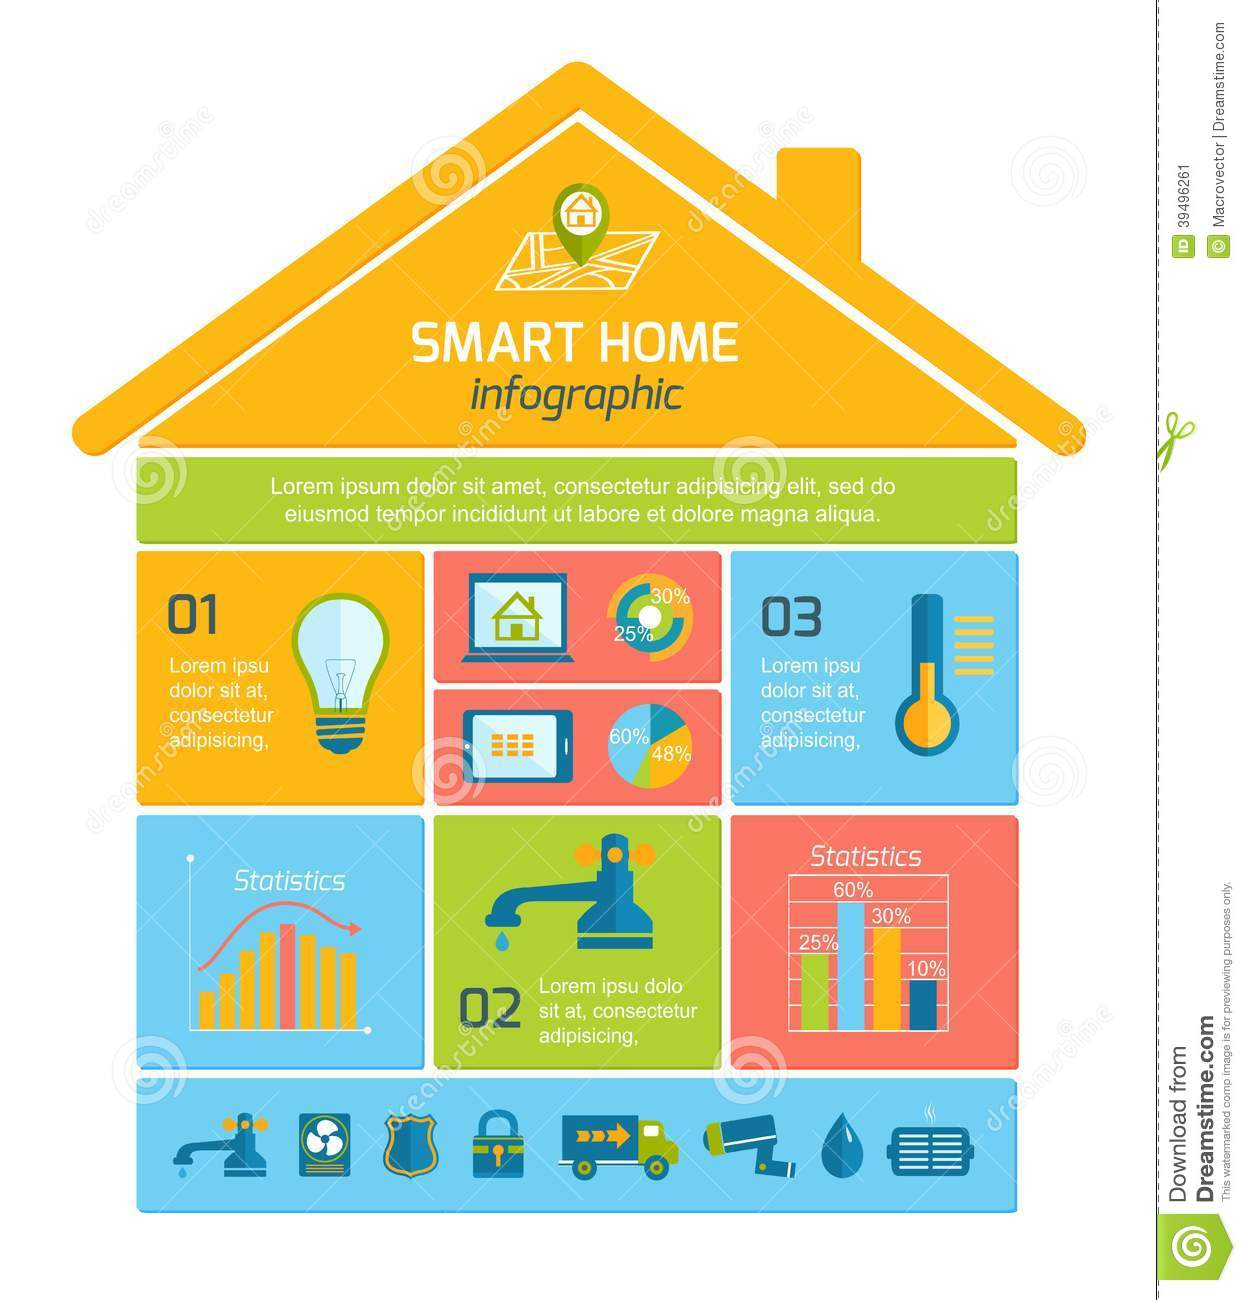 Smart Home Technology Smart Home Technology Concept Stock Vector  Image 41638581